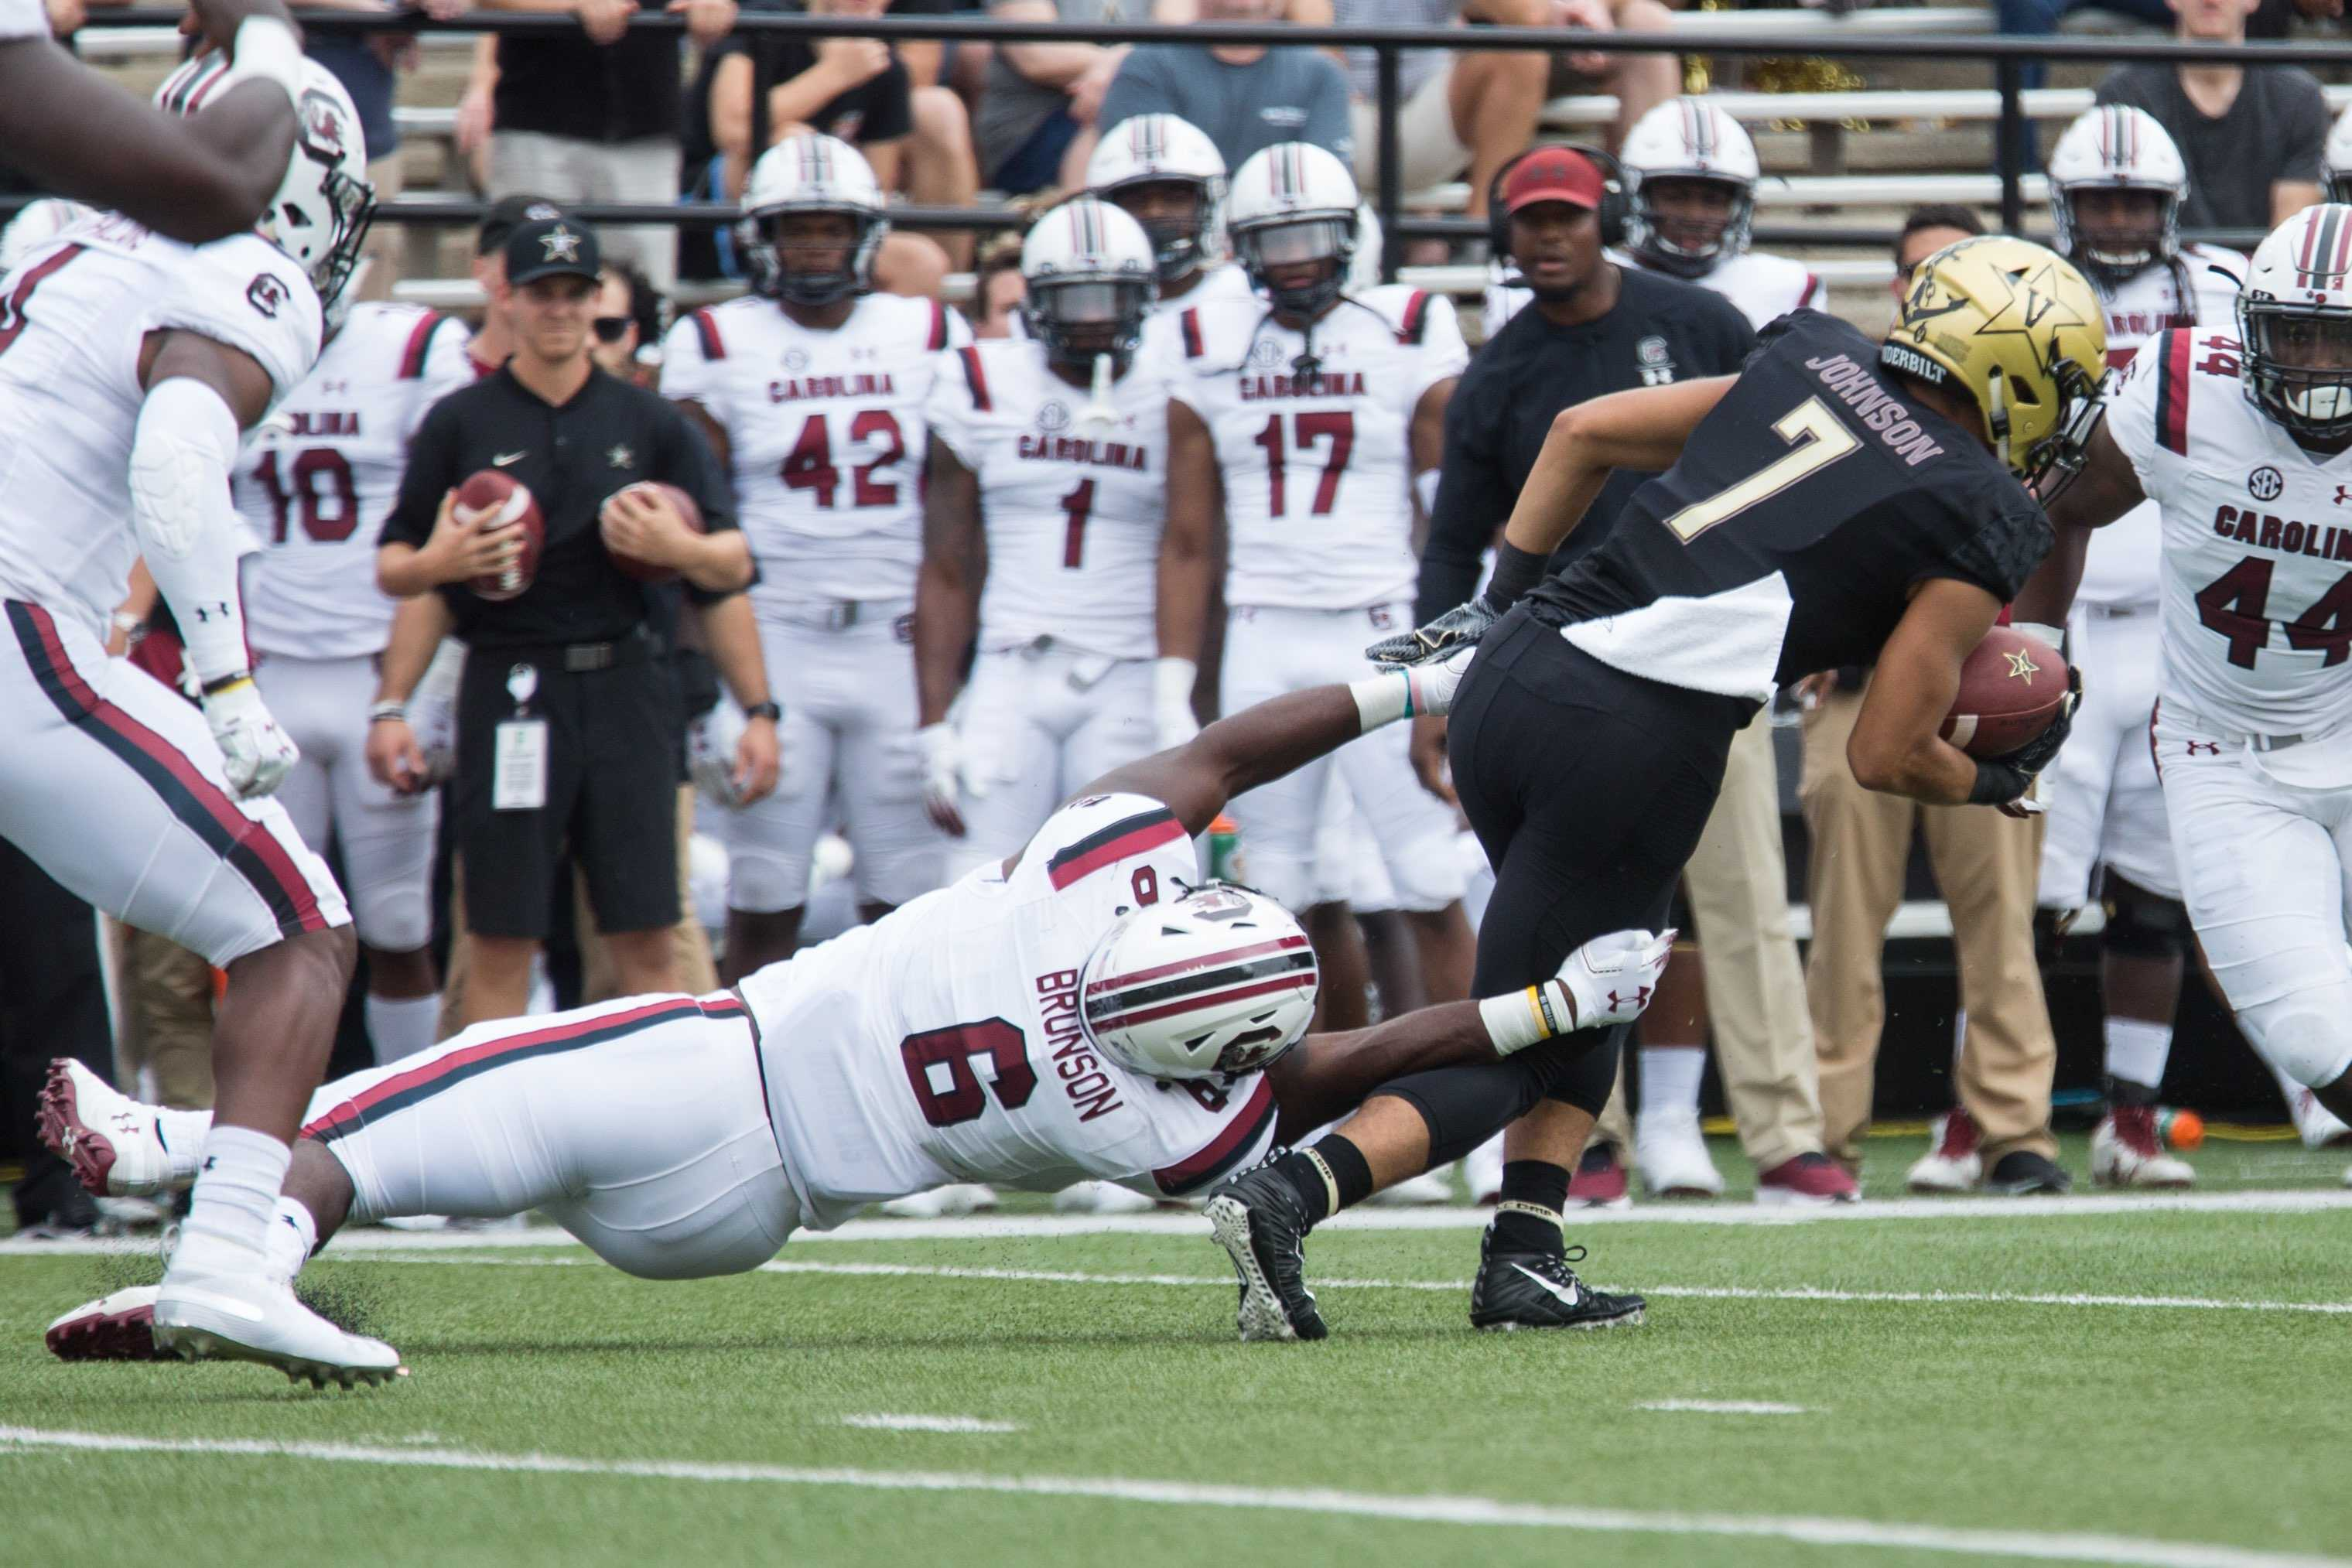 The Commodores play South Carolina in their first SEC football matchup of the season on Saturday, September 22, 2018. Vanderbilt lost 37-14 at home. (Photo by Claire Barnett)